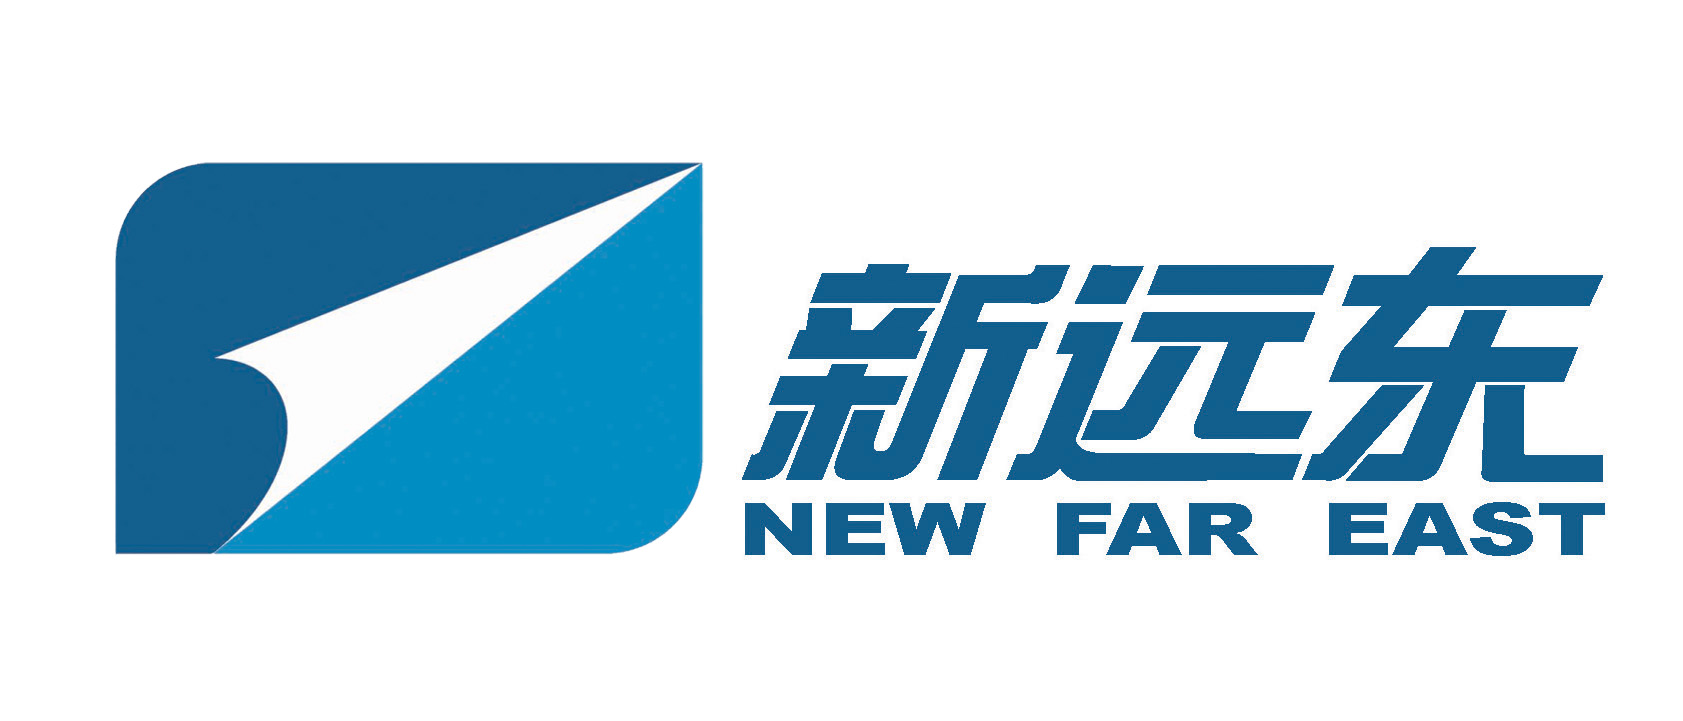 New Far East Cable Co., Ltd.